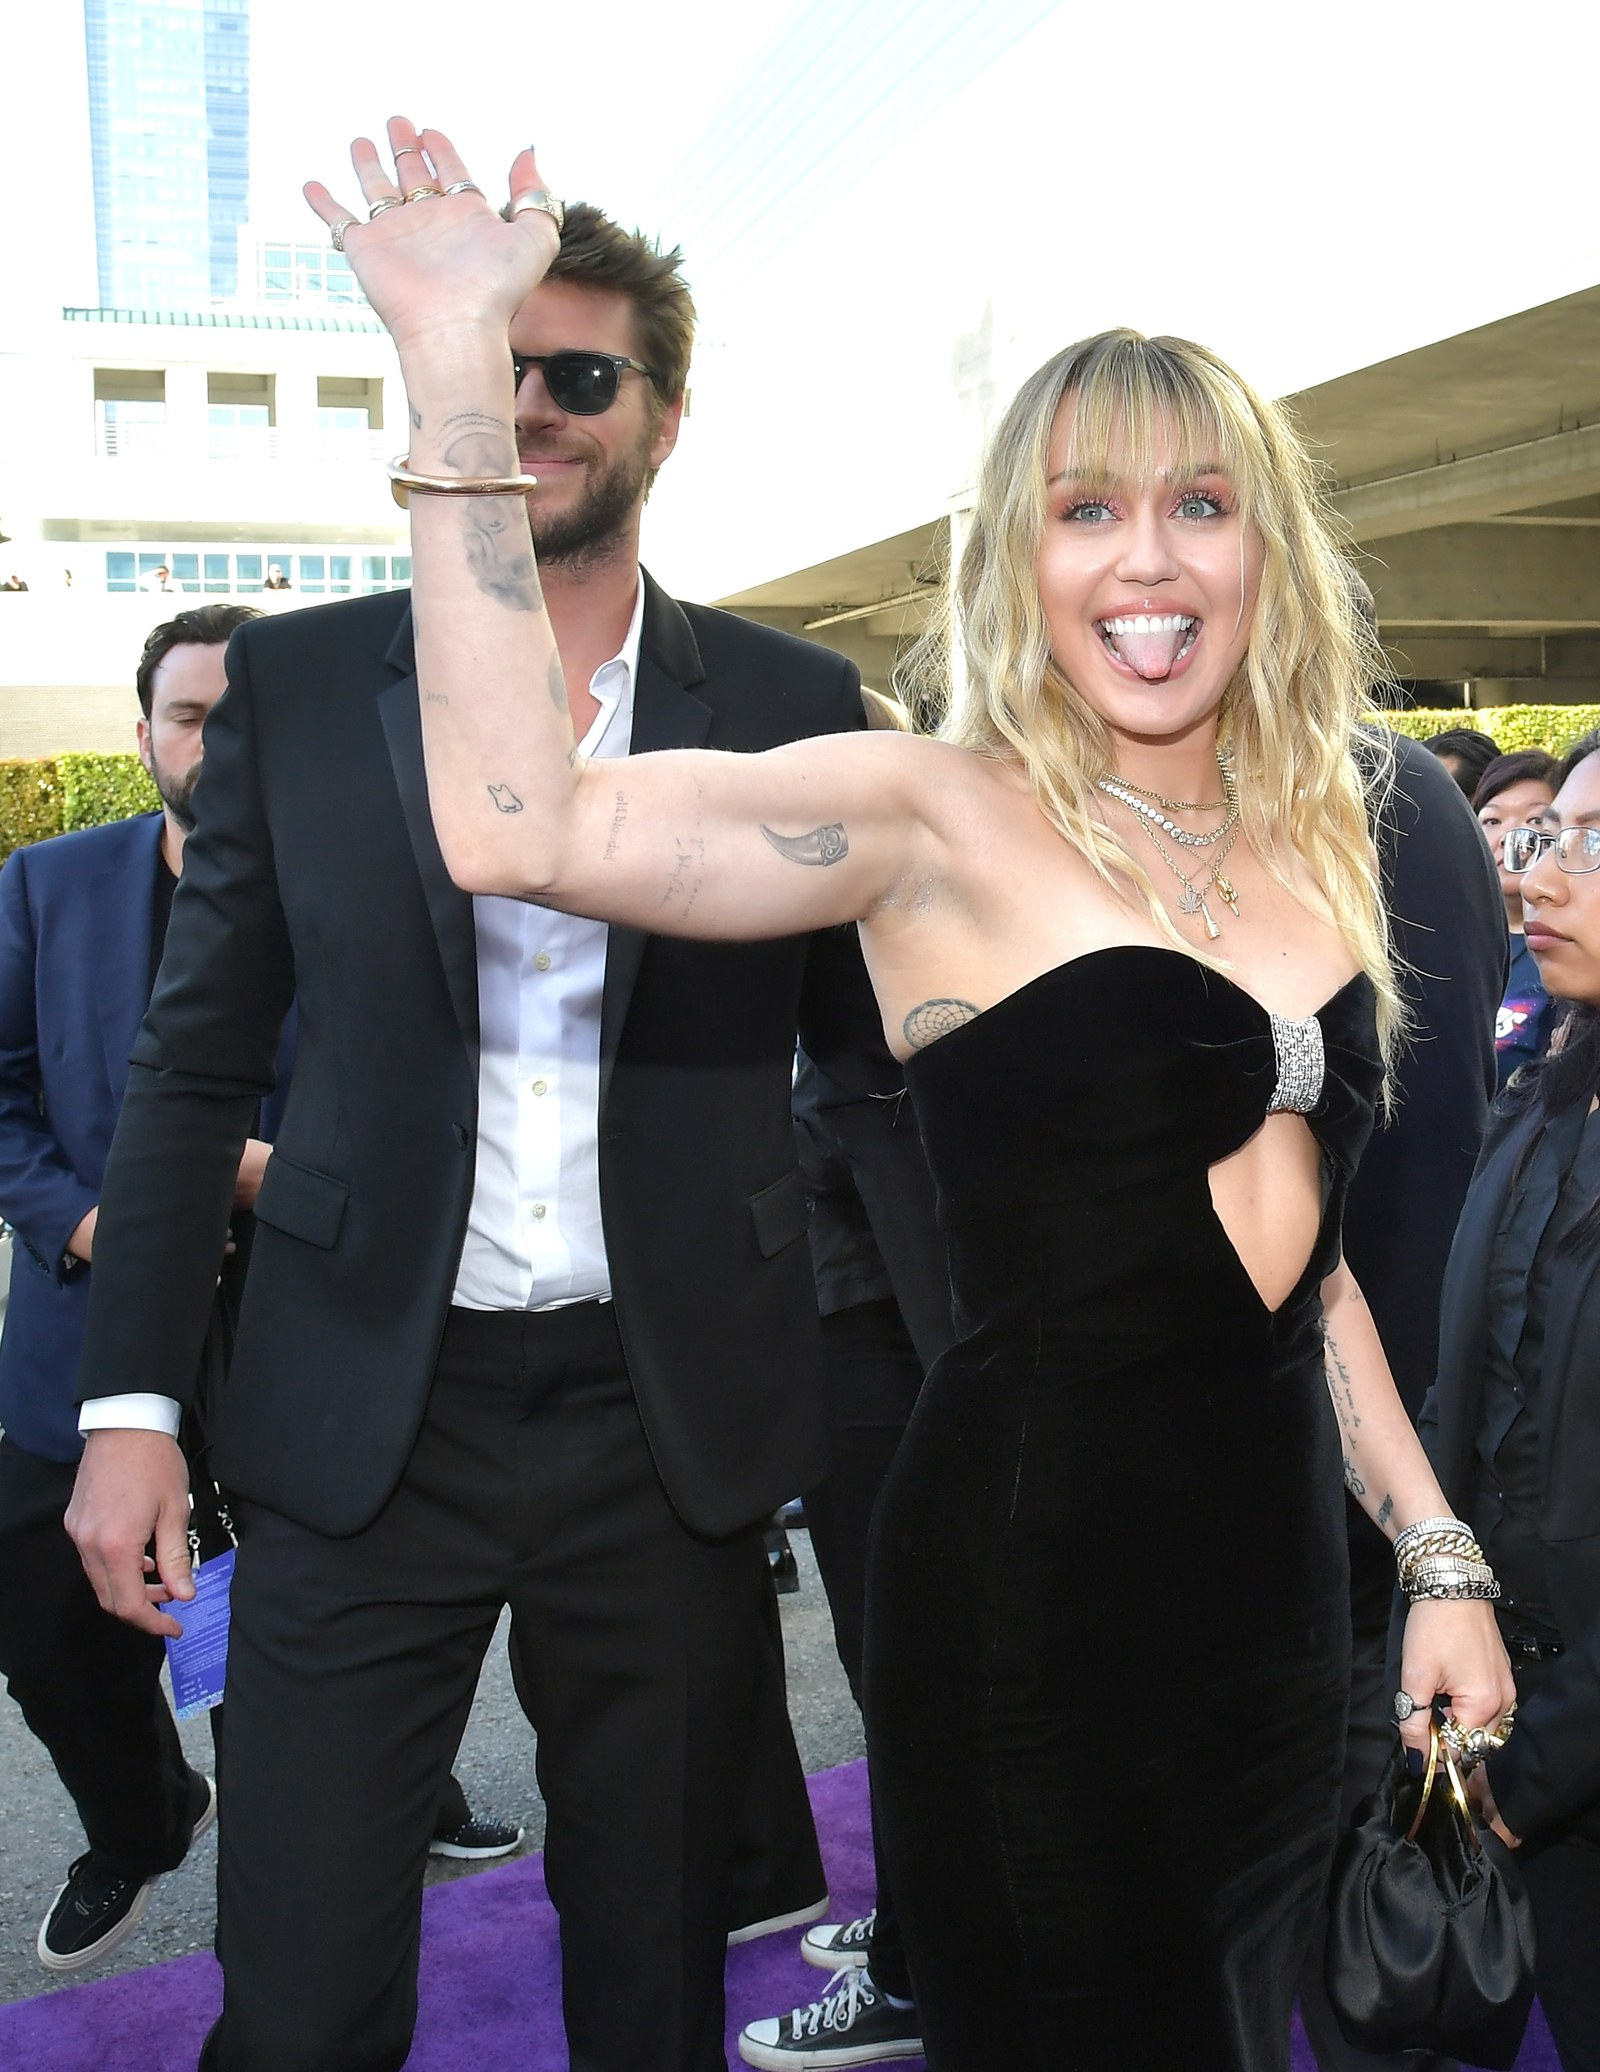 Liam Hemsworth and Miley Cyrus at the Hollywood premiere of Avengers Endgame in April 2019.